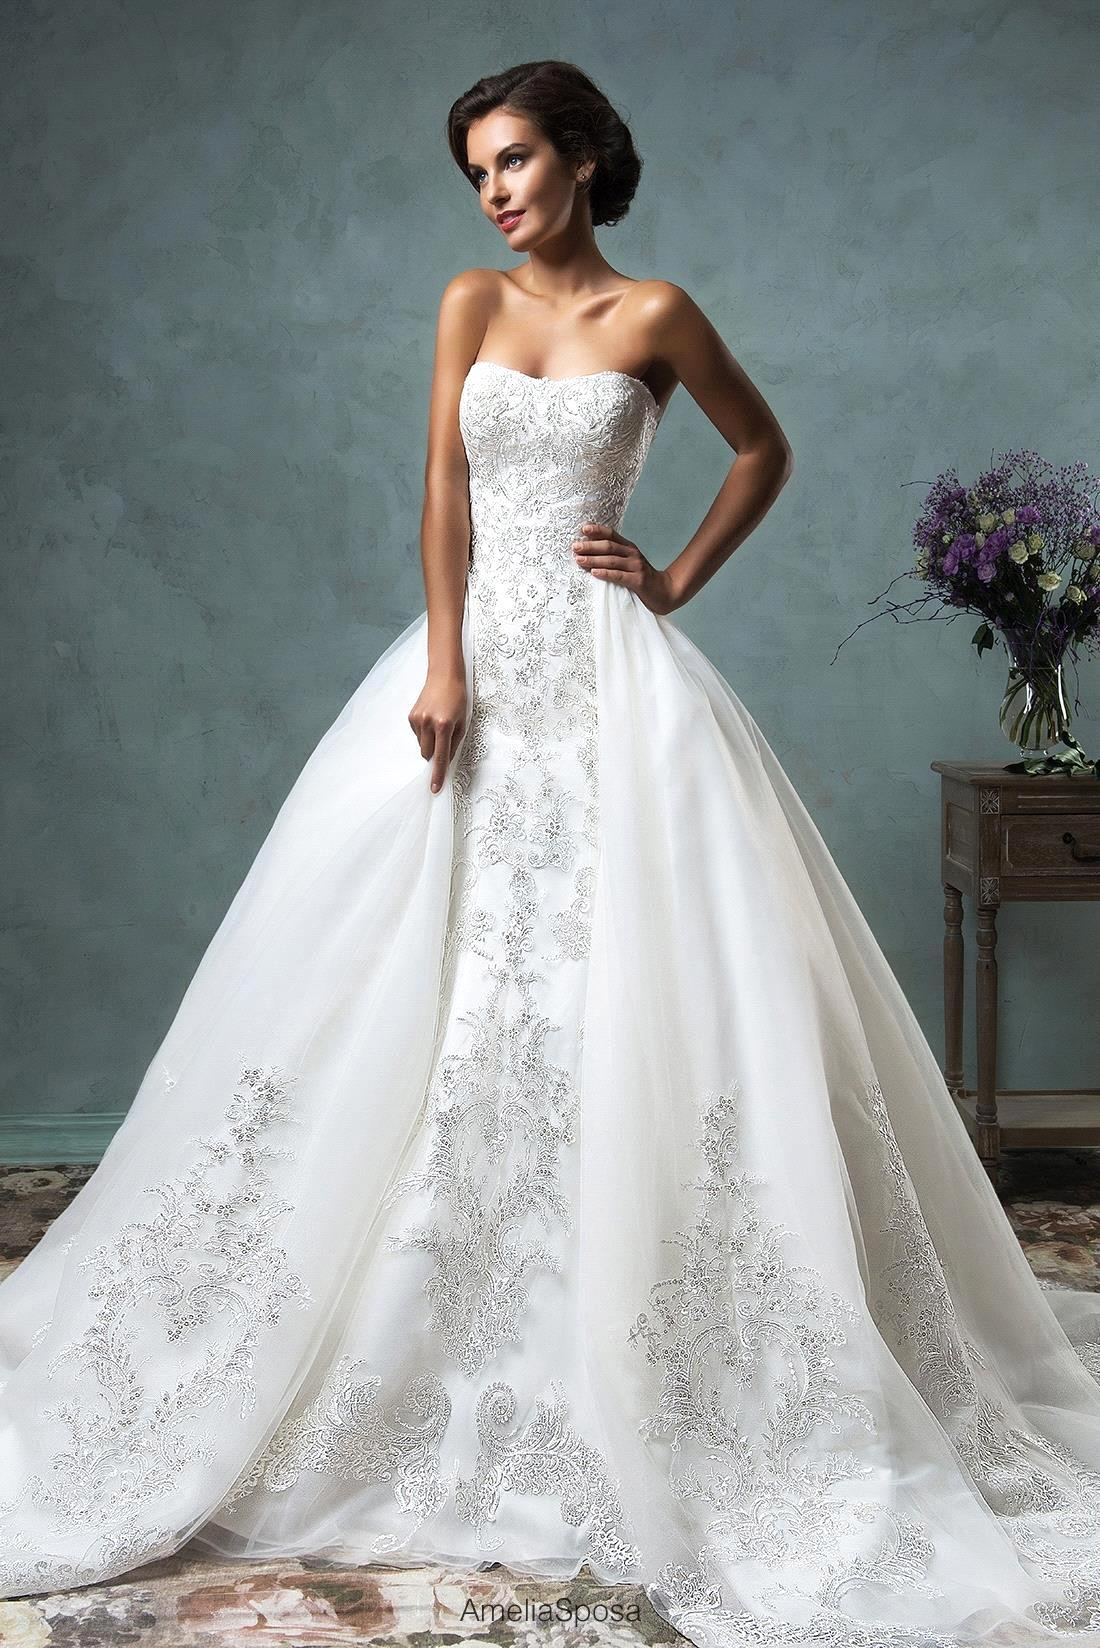 Aliexpress.com : Buy Fancy 2016 Wedding Dress With Sleeves Off the ...